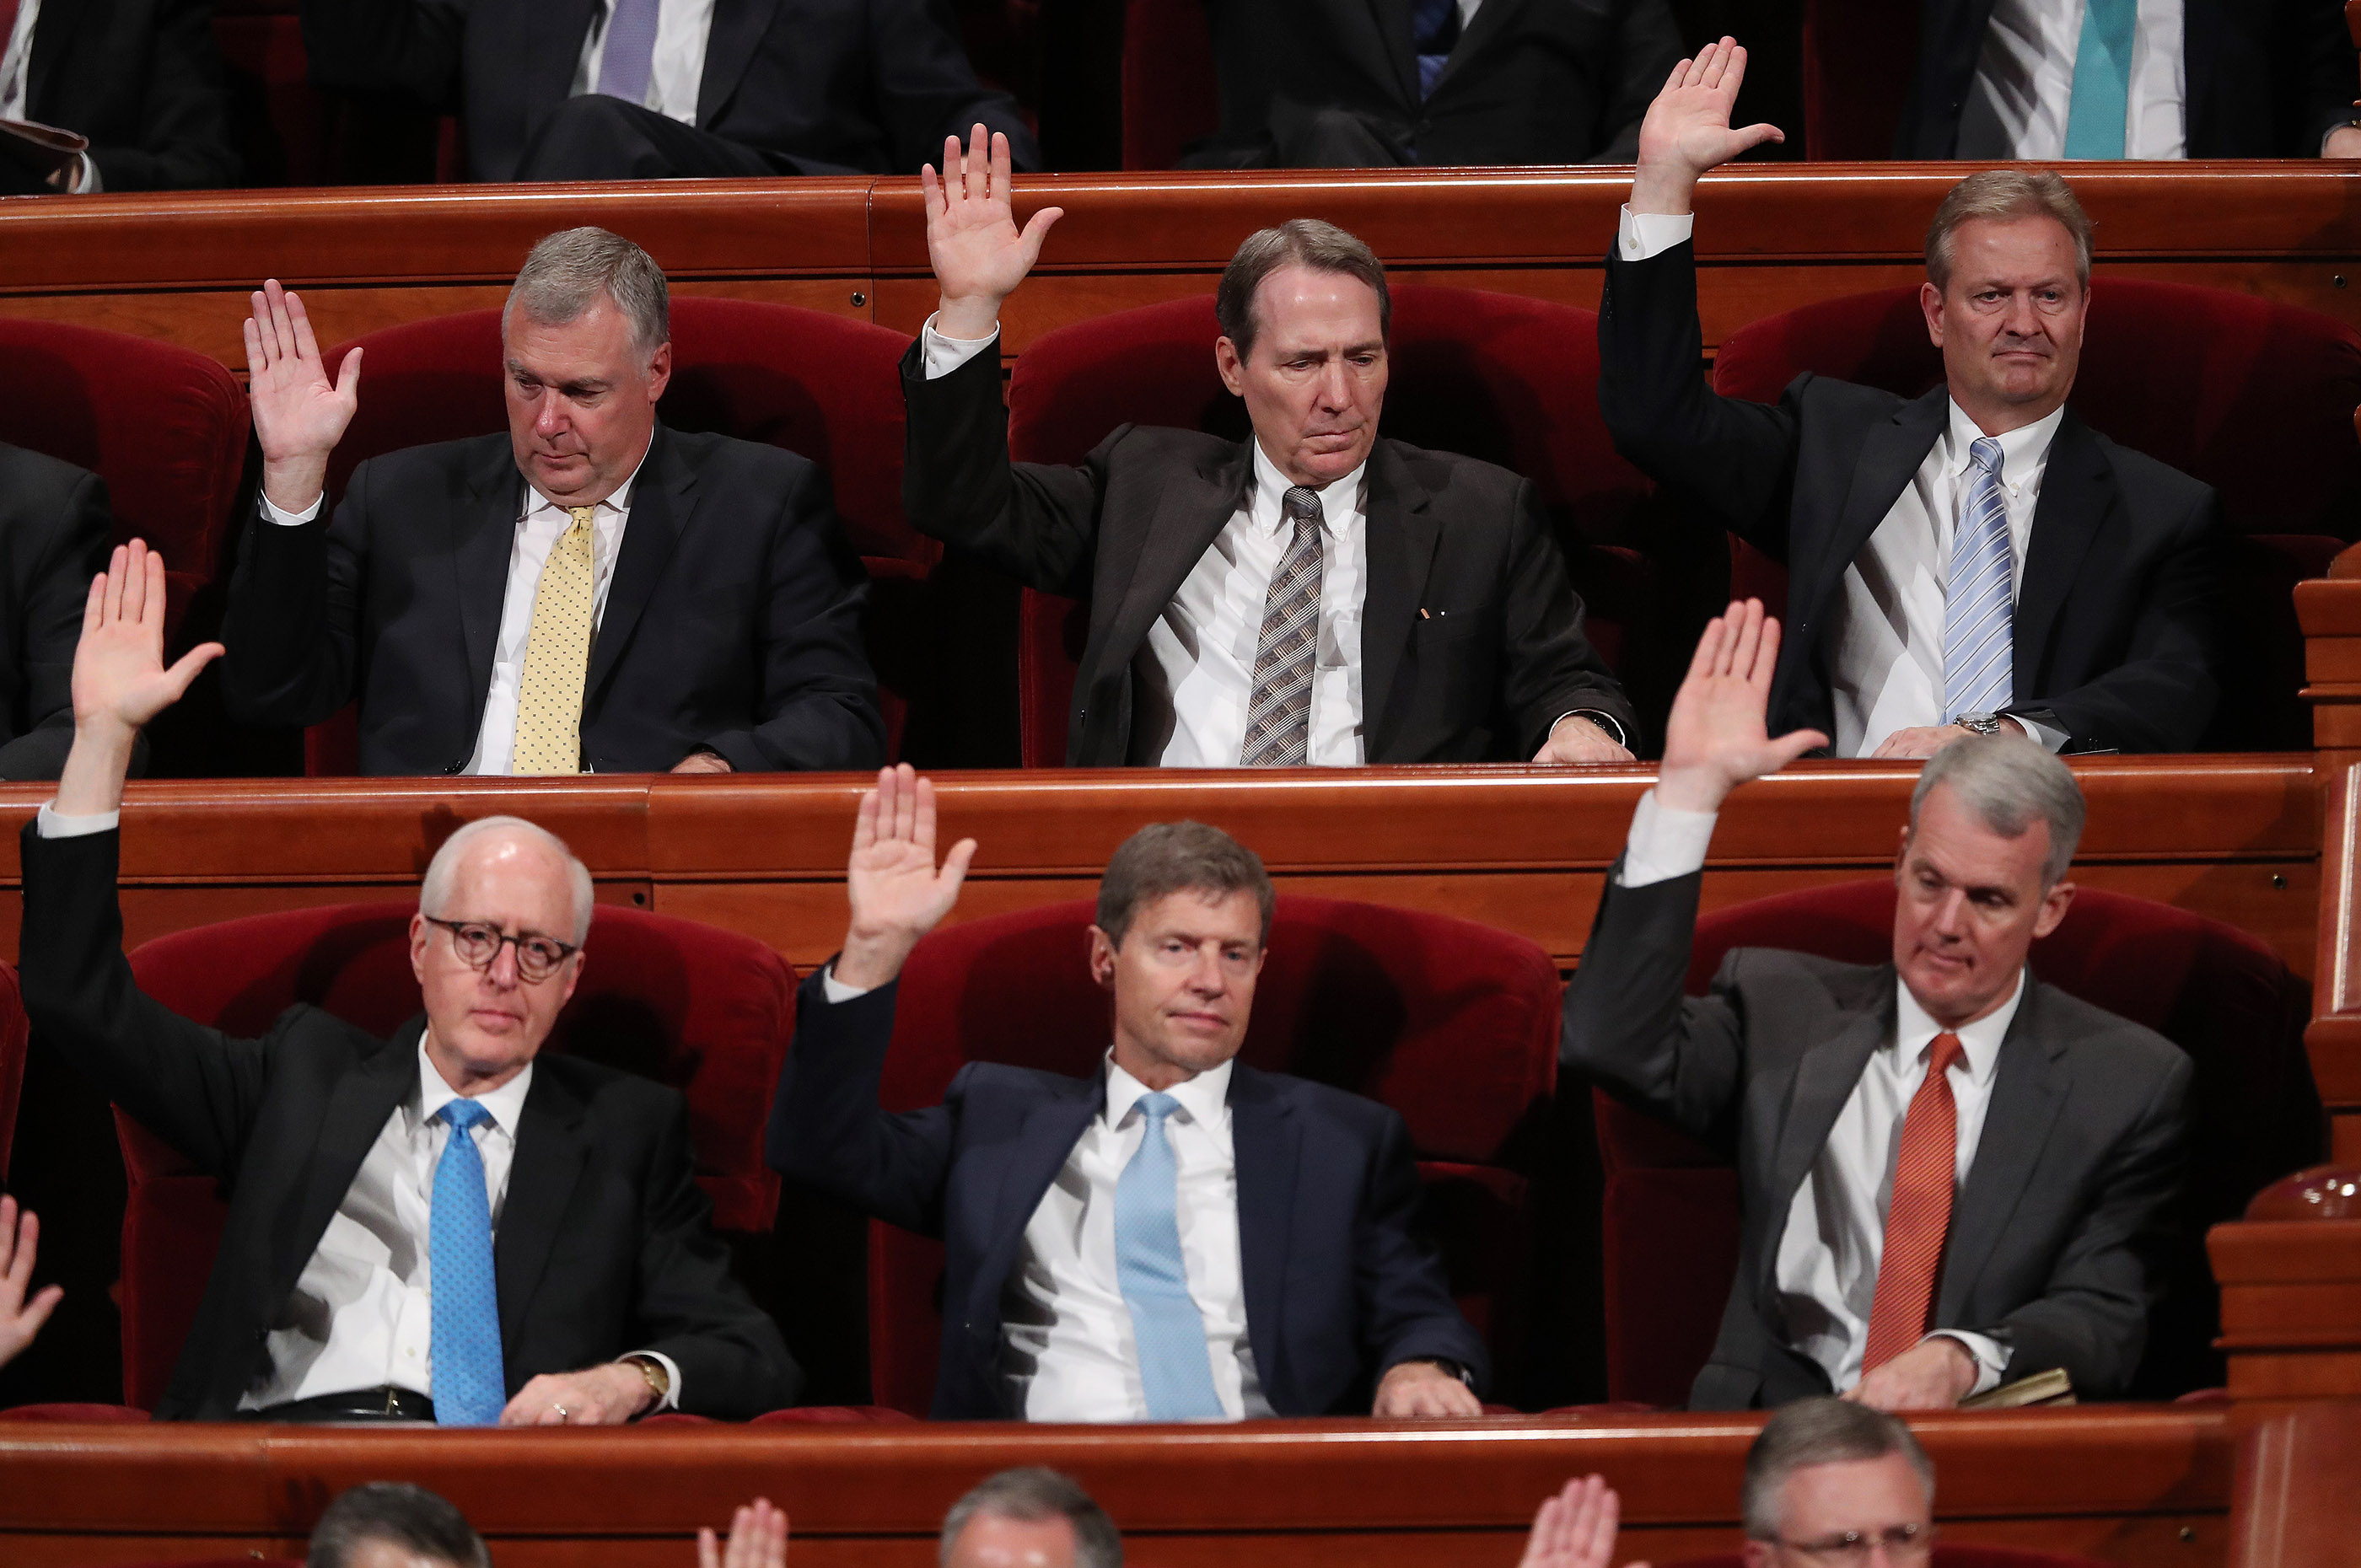 General authorities sustain other general authorities during the Saturday afternoon session of the 188th Semiannual General Conference of The Church of Jesus Christ of Latter-day Saints in the Conference Center in Salt Lake City on Saturday, Oct. 6, 2018.